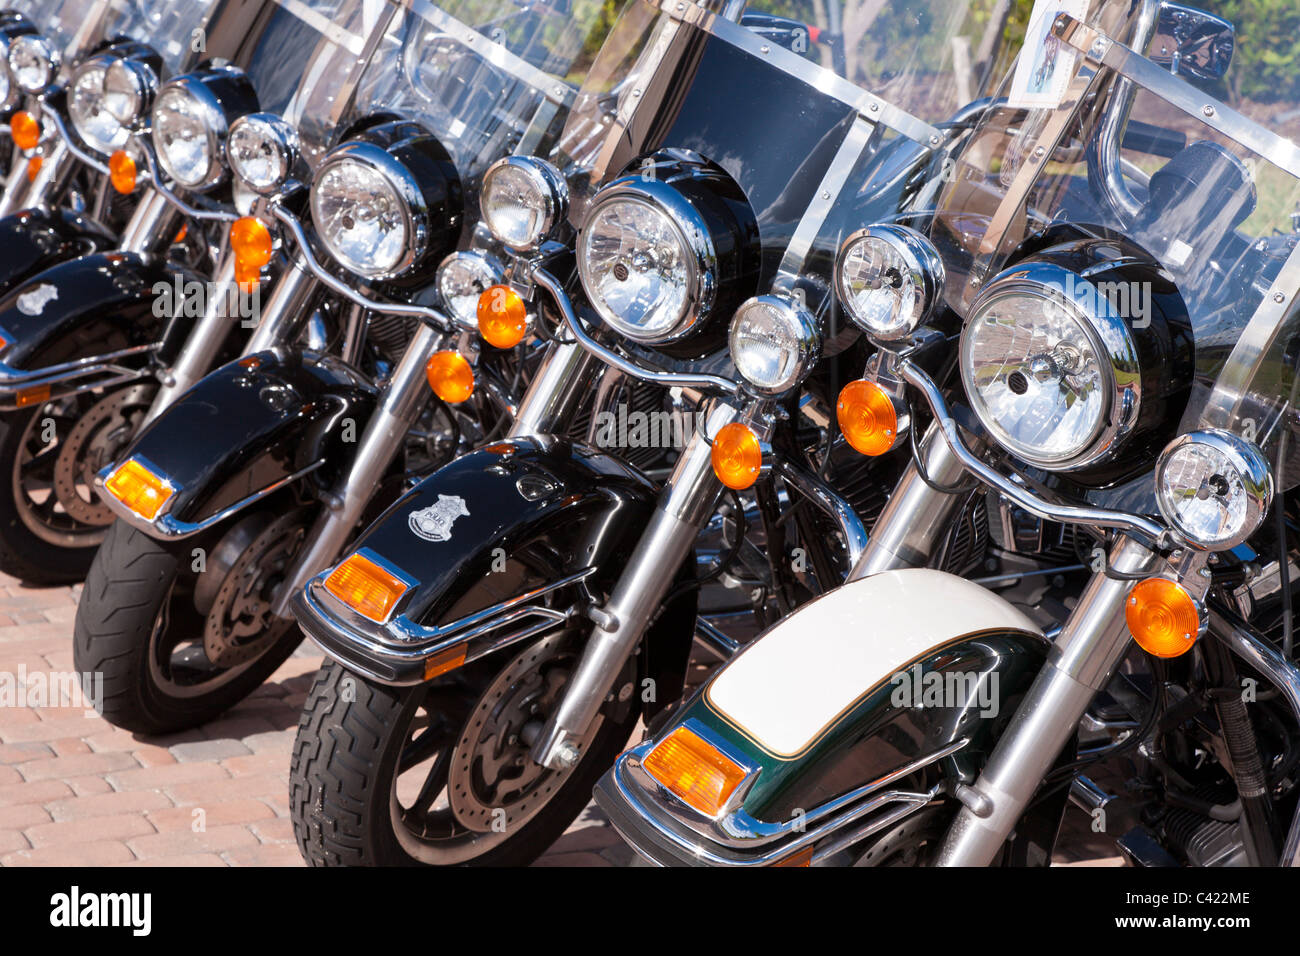 Harley Davidson Police motorcycles in a line for sale at the Bruce Rossmeyer Harley Davidson Center in Daytona, - Stock Image